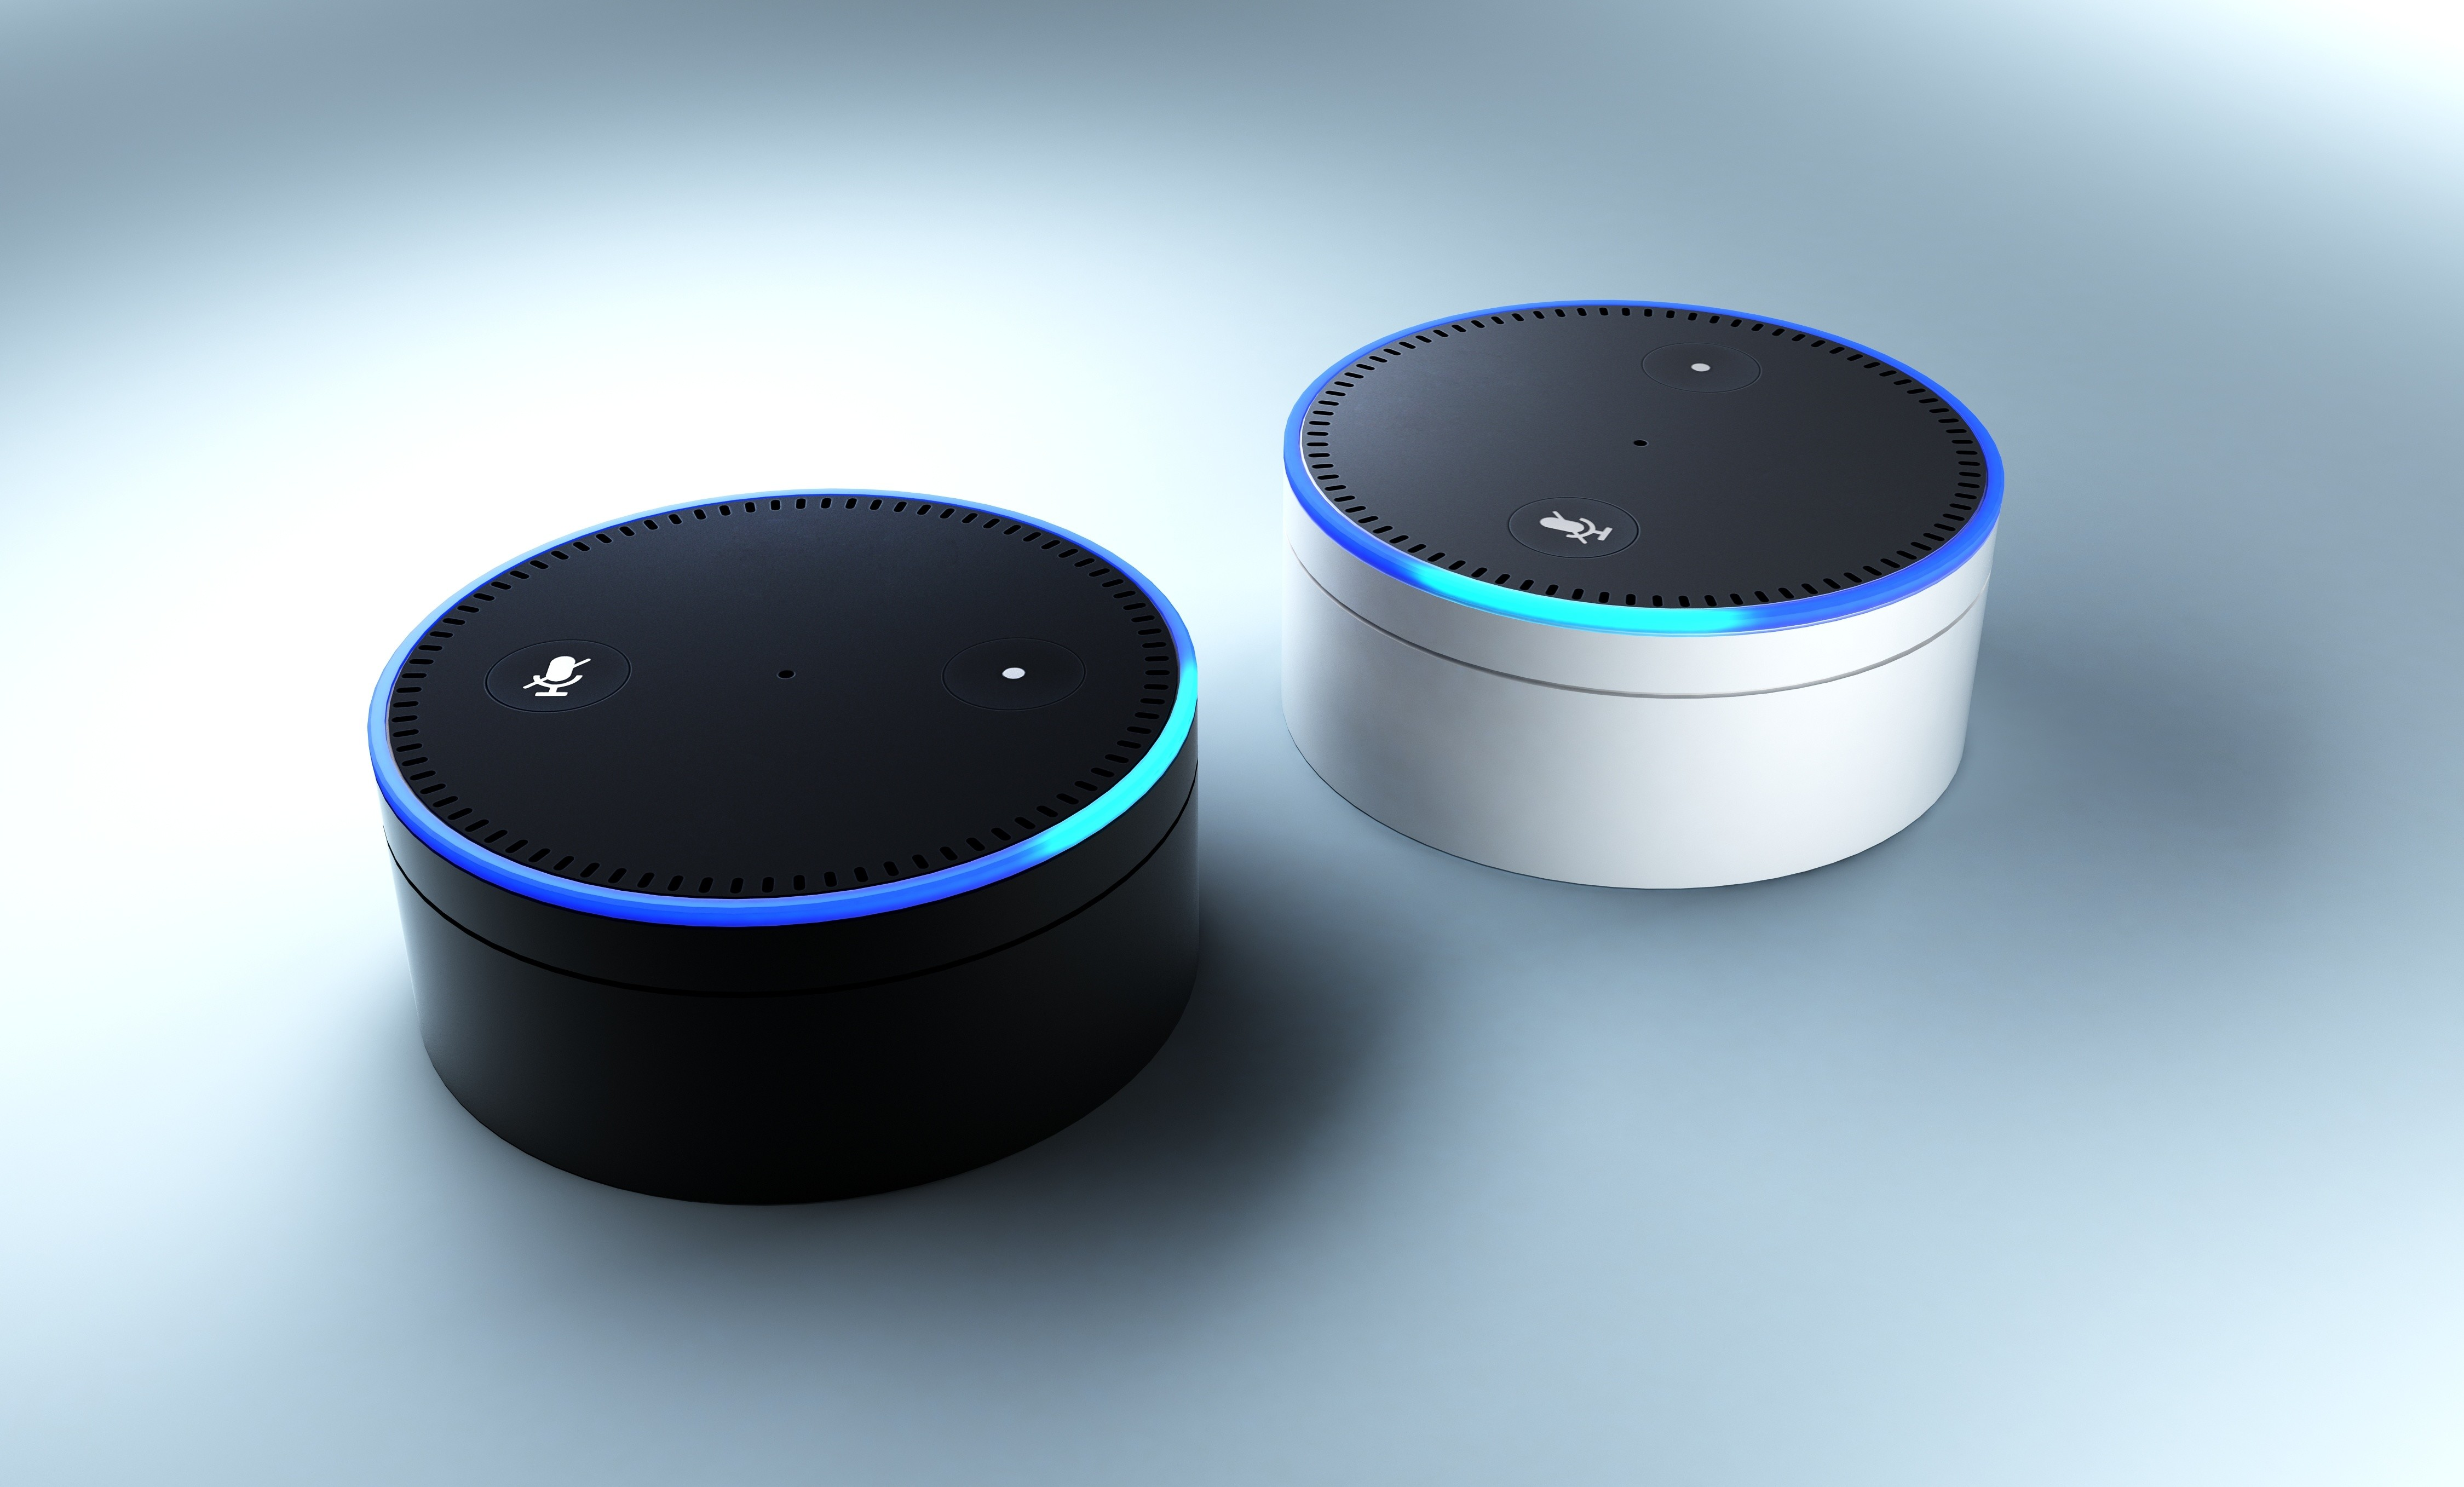 The Best Speakers For Echo Dot Updated Weekly Speaker Jbl Charge Mini 2 Plus Wireless Portable Bluetooth Smartphone Aux